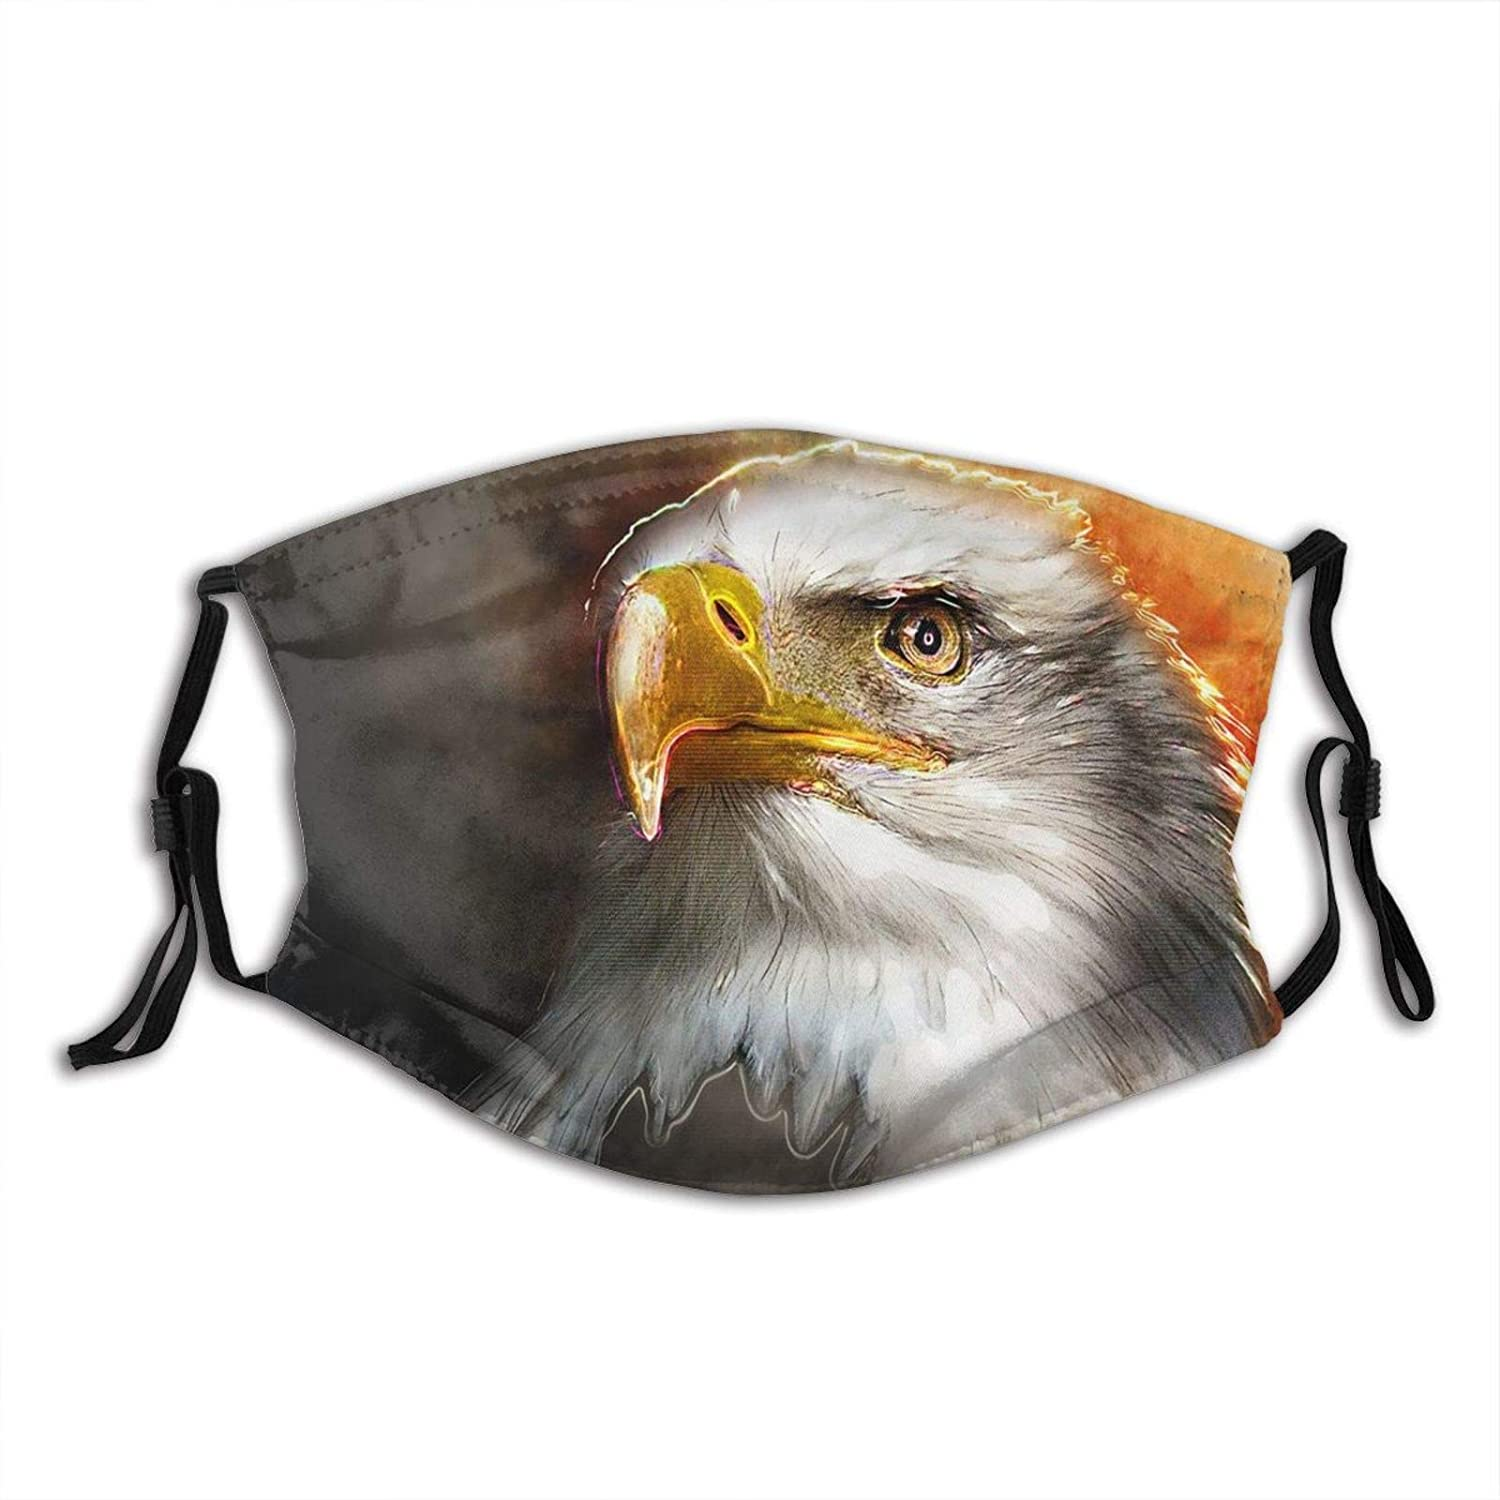 Black And White Eagle Head Face Mask Scarf, Washable Breathable Reusable Bandana Adjustable, For Adult Women & Men Outdoor